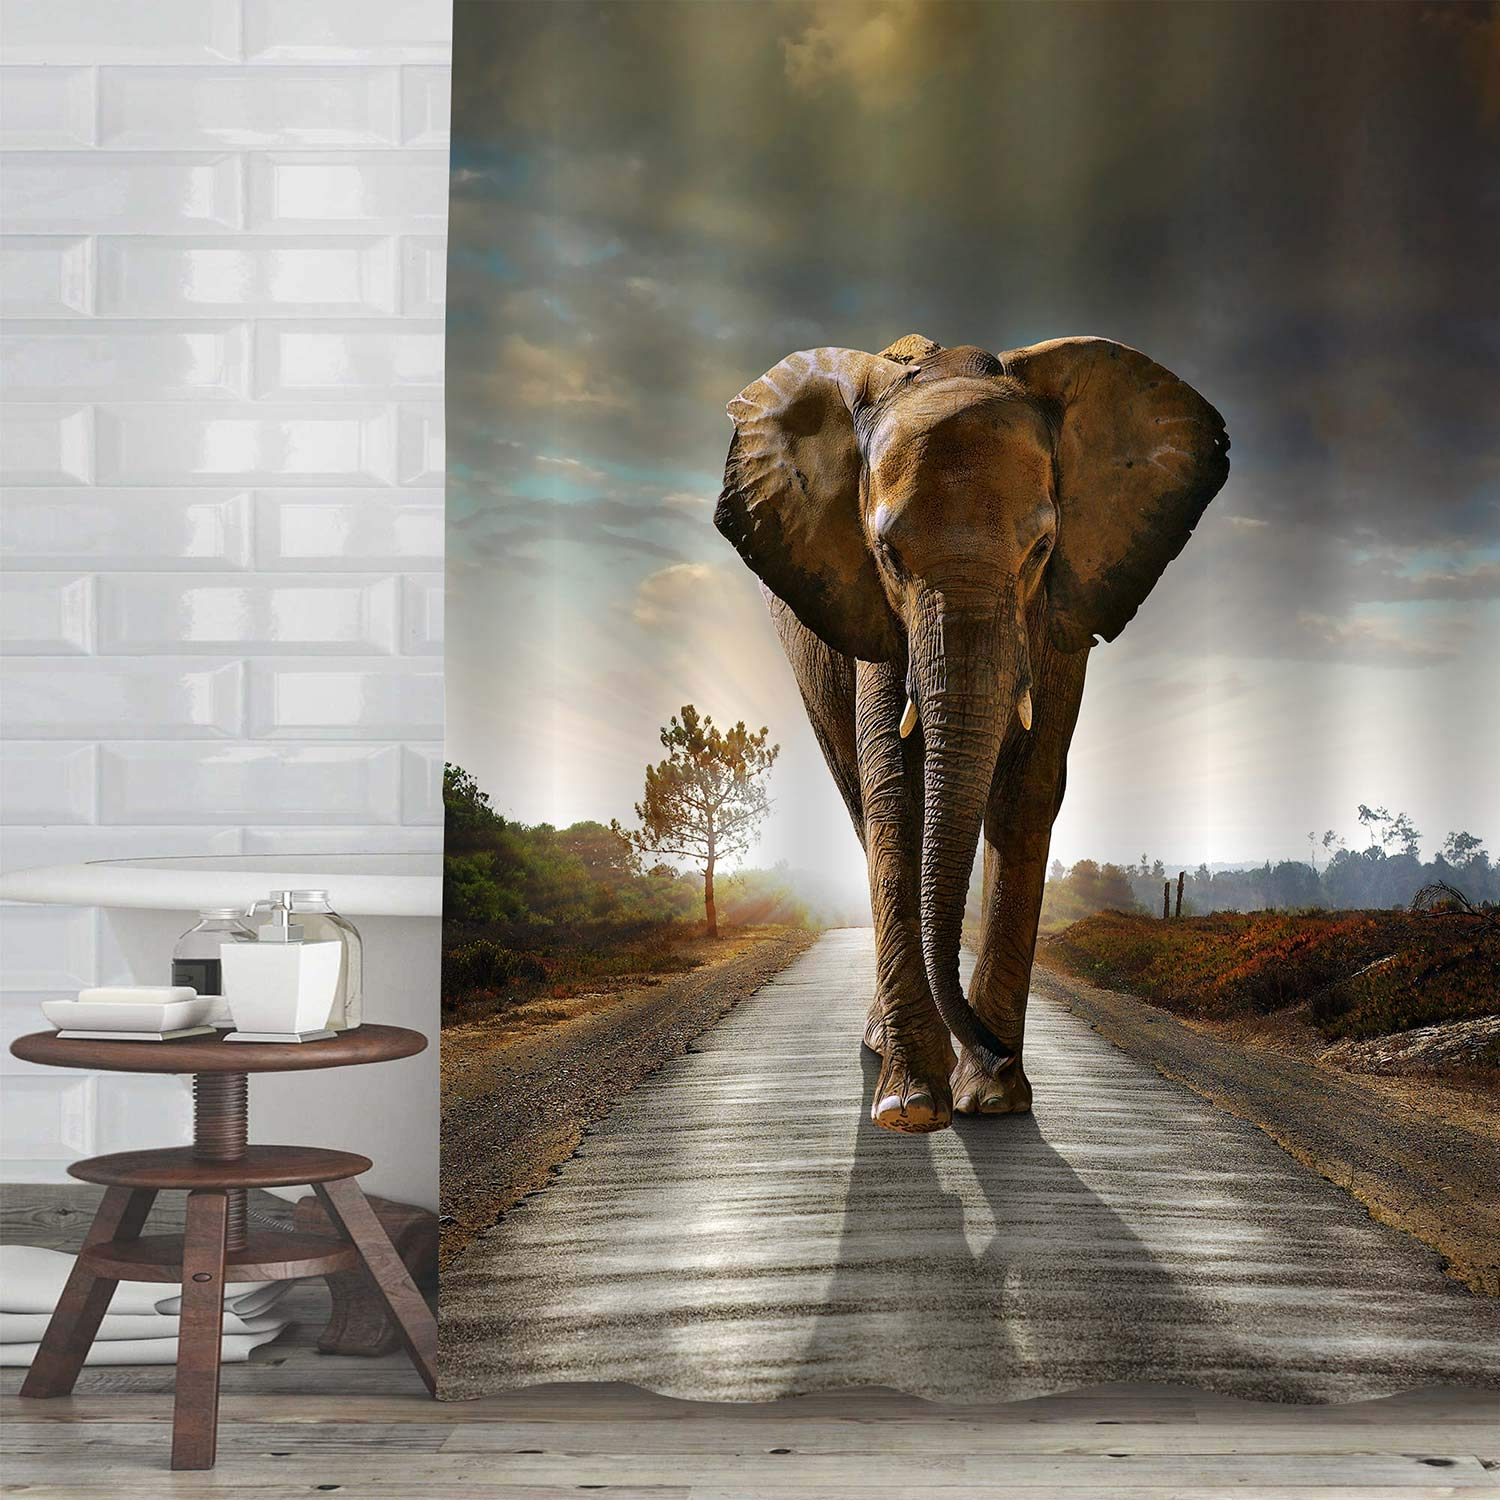 "MitoVilla Lonely Elephant Shower Curtain Set with Hooks, Beautiful Elephant on a Gravel Pathway with Sunrise Backdrop Bathroom Decor, Brown, 72"" W x 84"" L for Bathroom Bathtub"